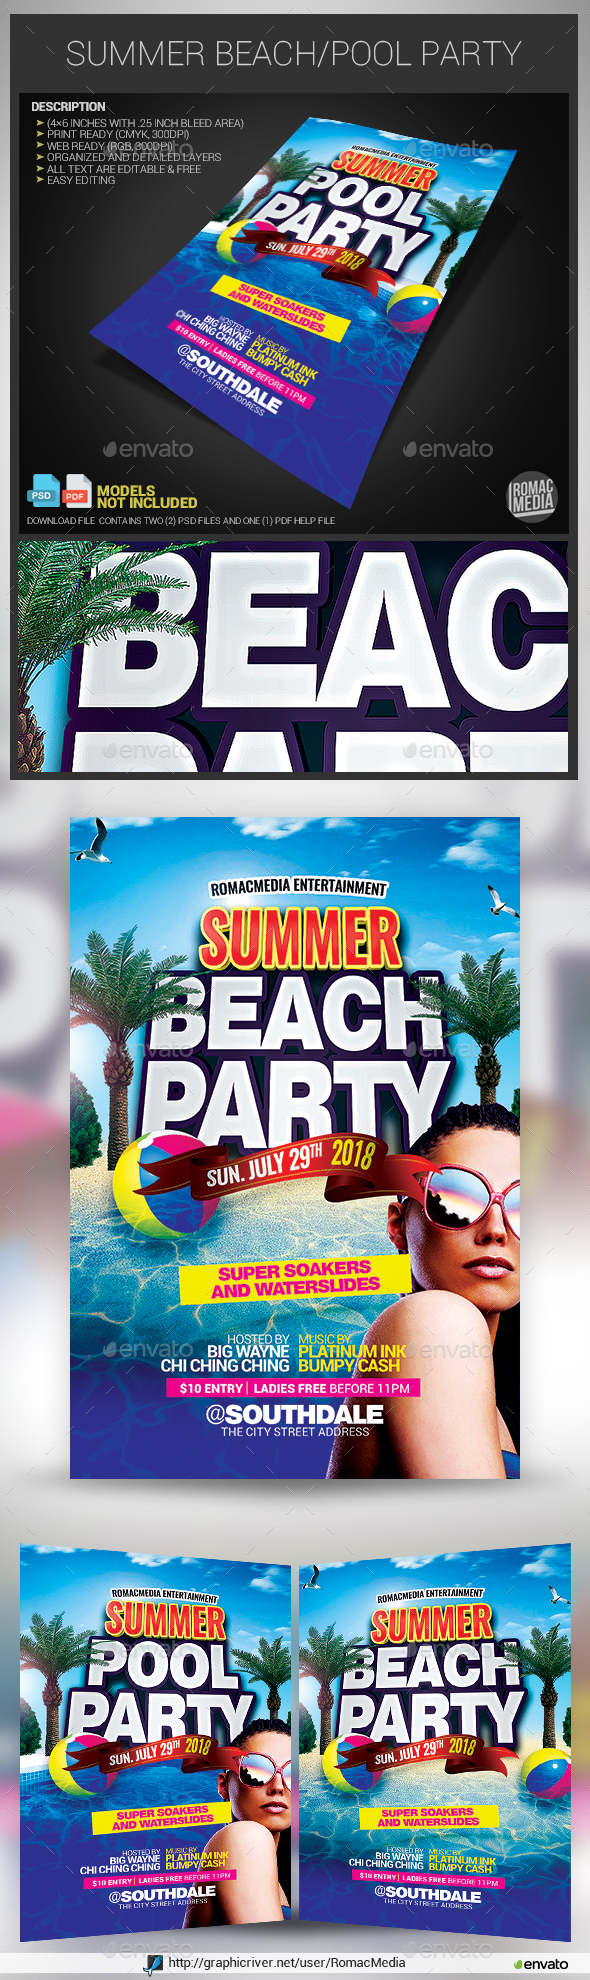 Summer Beach/Pool Flyer - Clubs & Parties Events